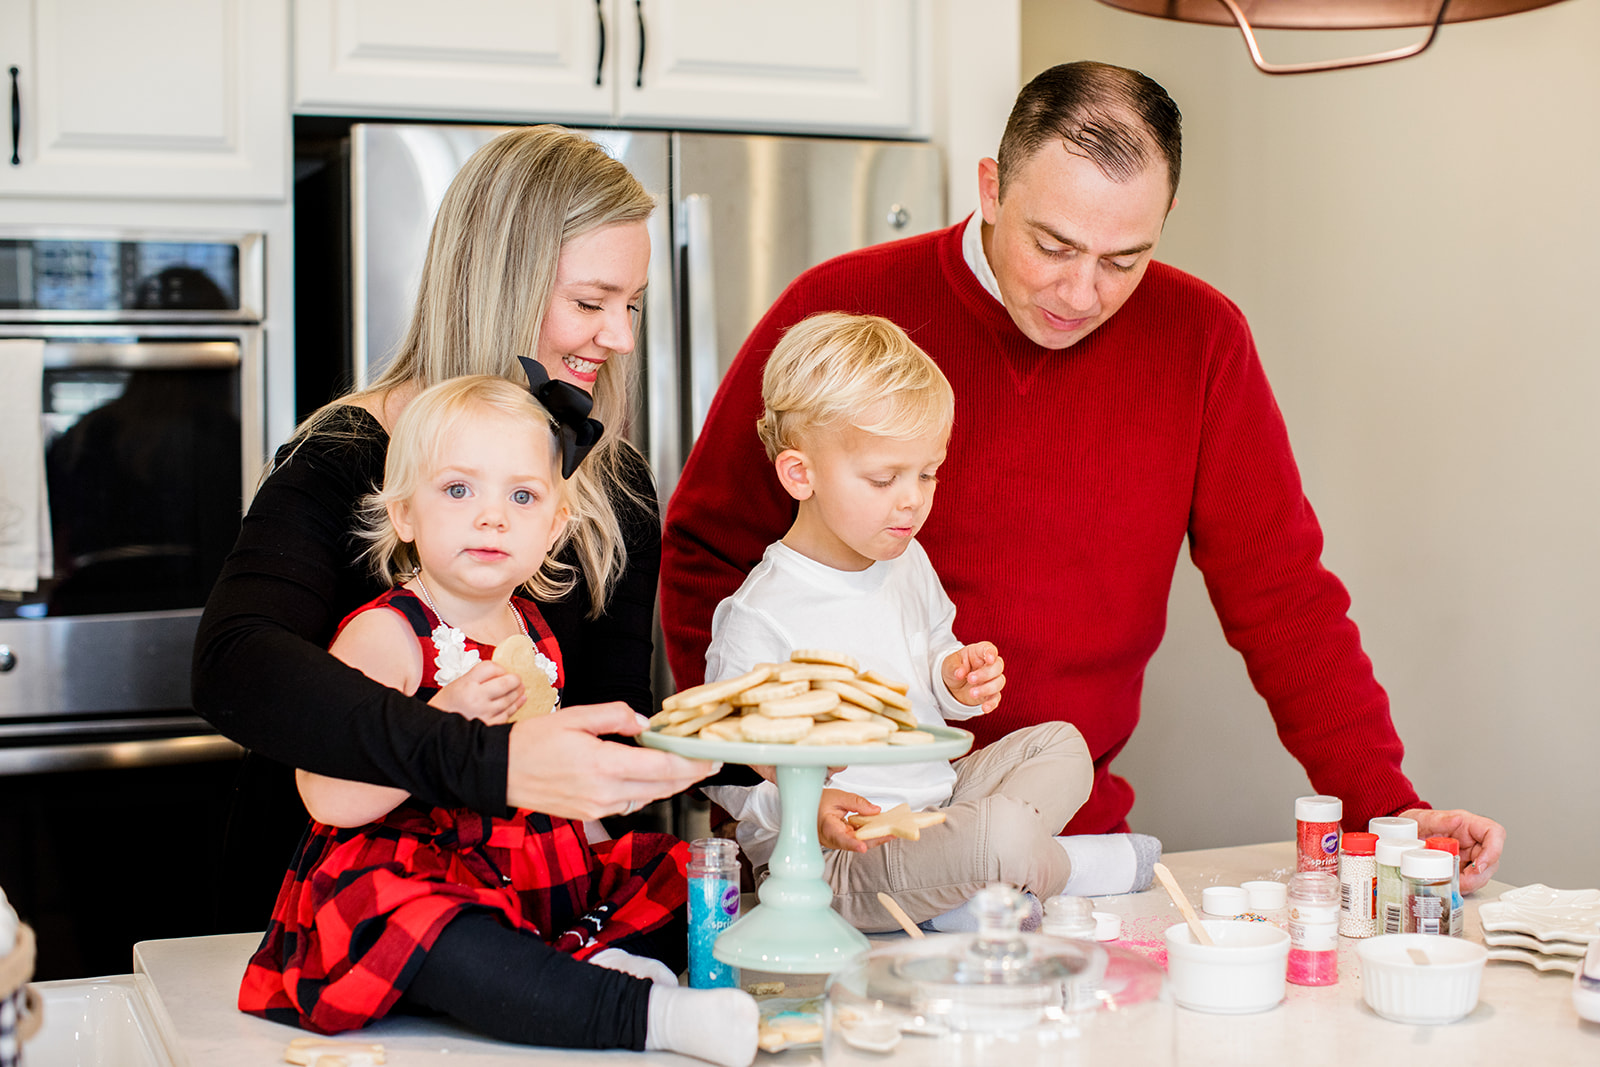 At Home Christmas Family Photos Baking Cookies and Smores - Image Property of www.j-dphoto.com